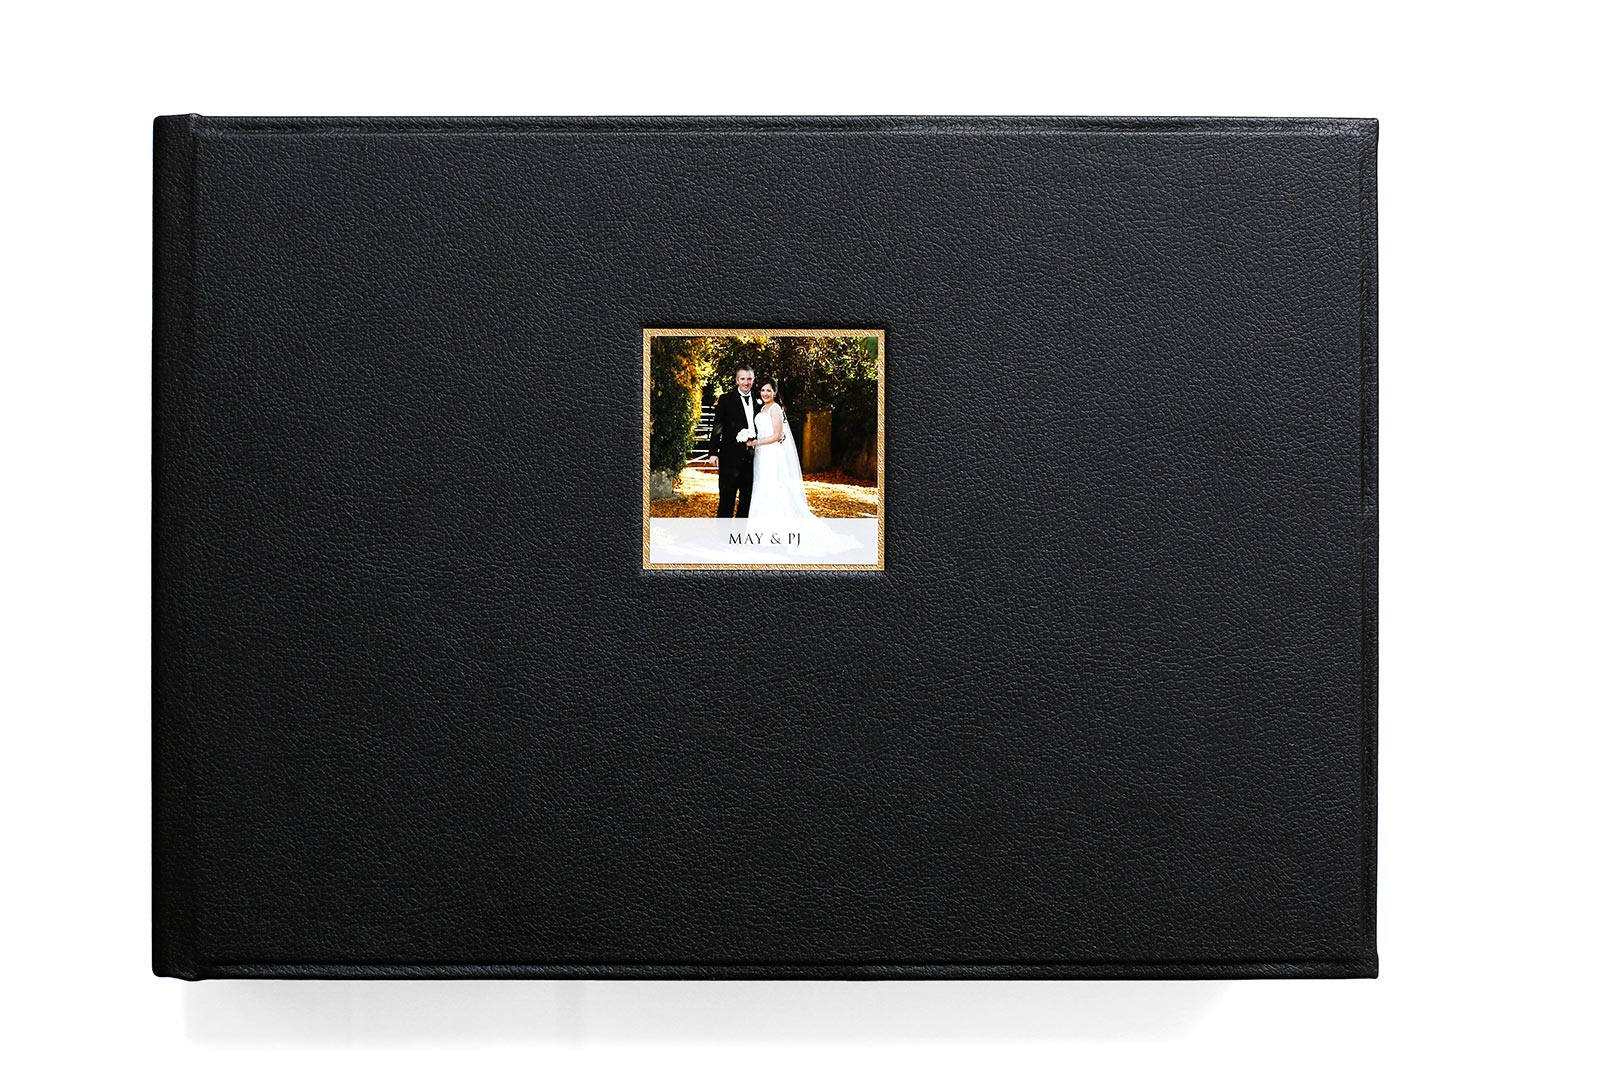 10x14 inch album in classic black leather and small photo front